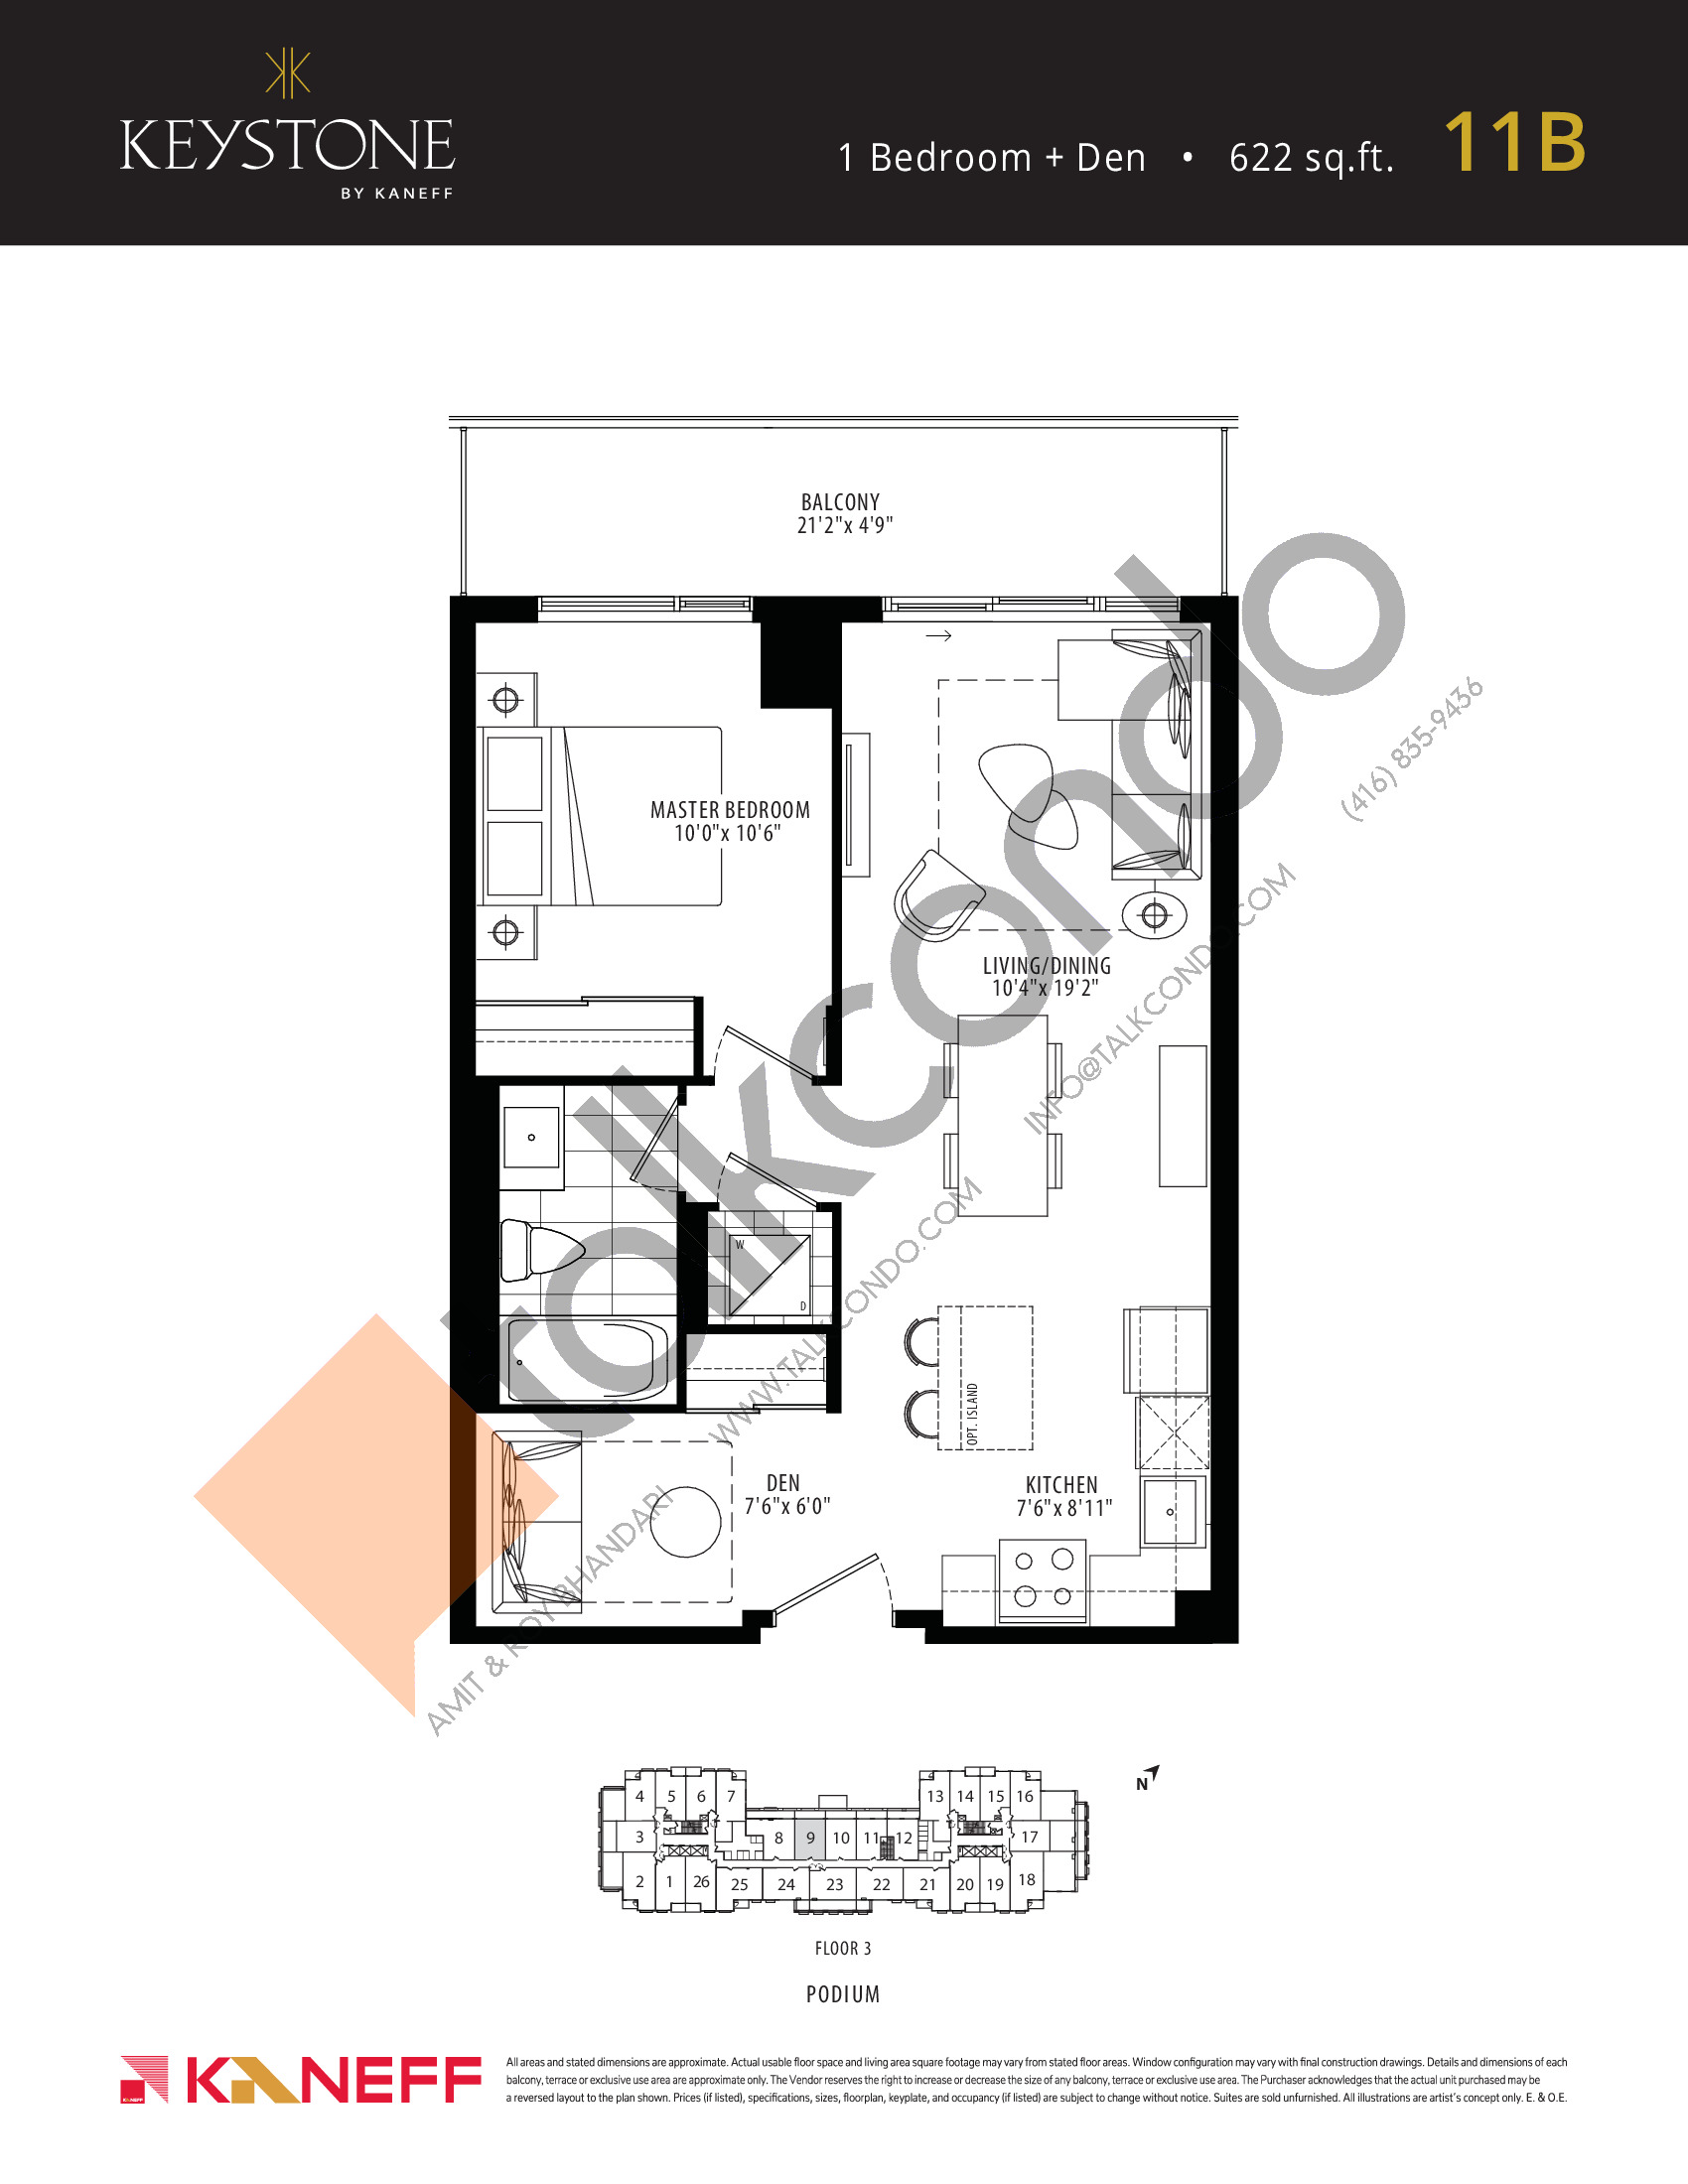 11B Floor Plan at Keystone Condos Phase 2 - 622 sq.ft